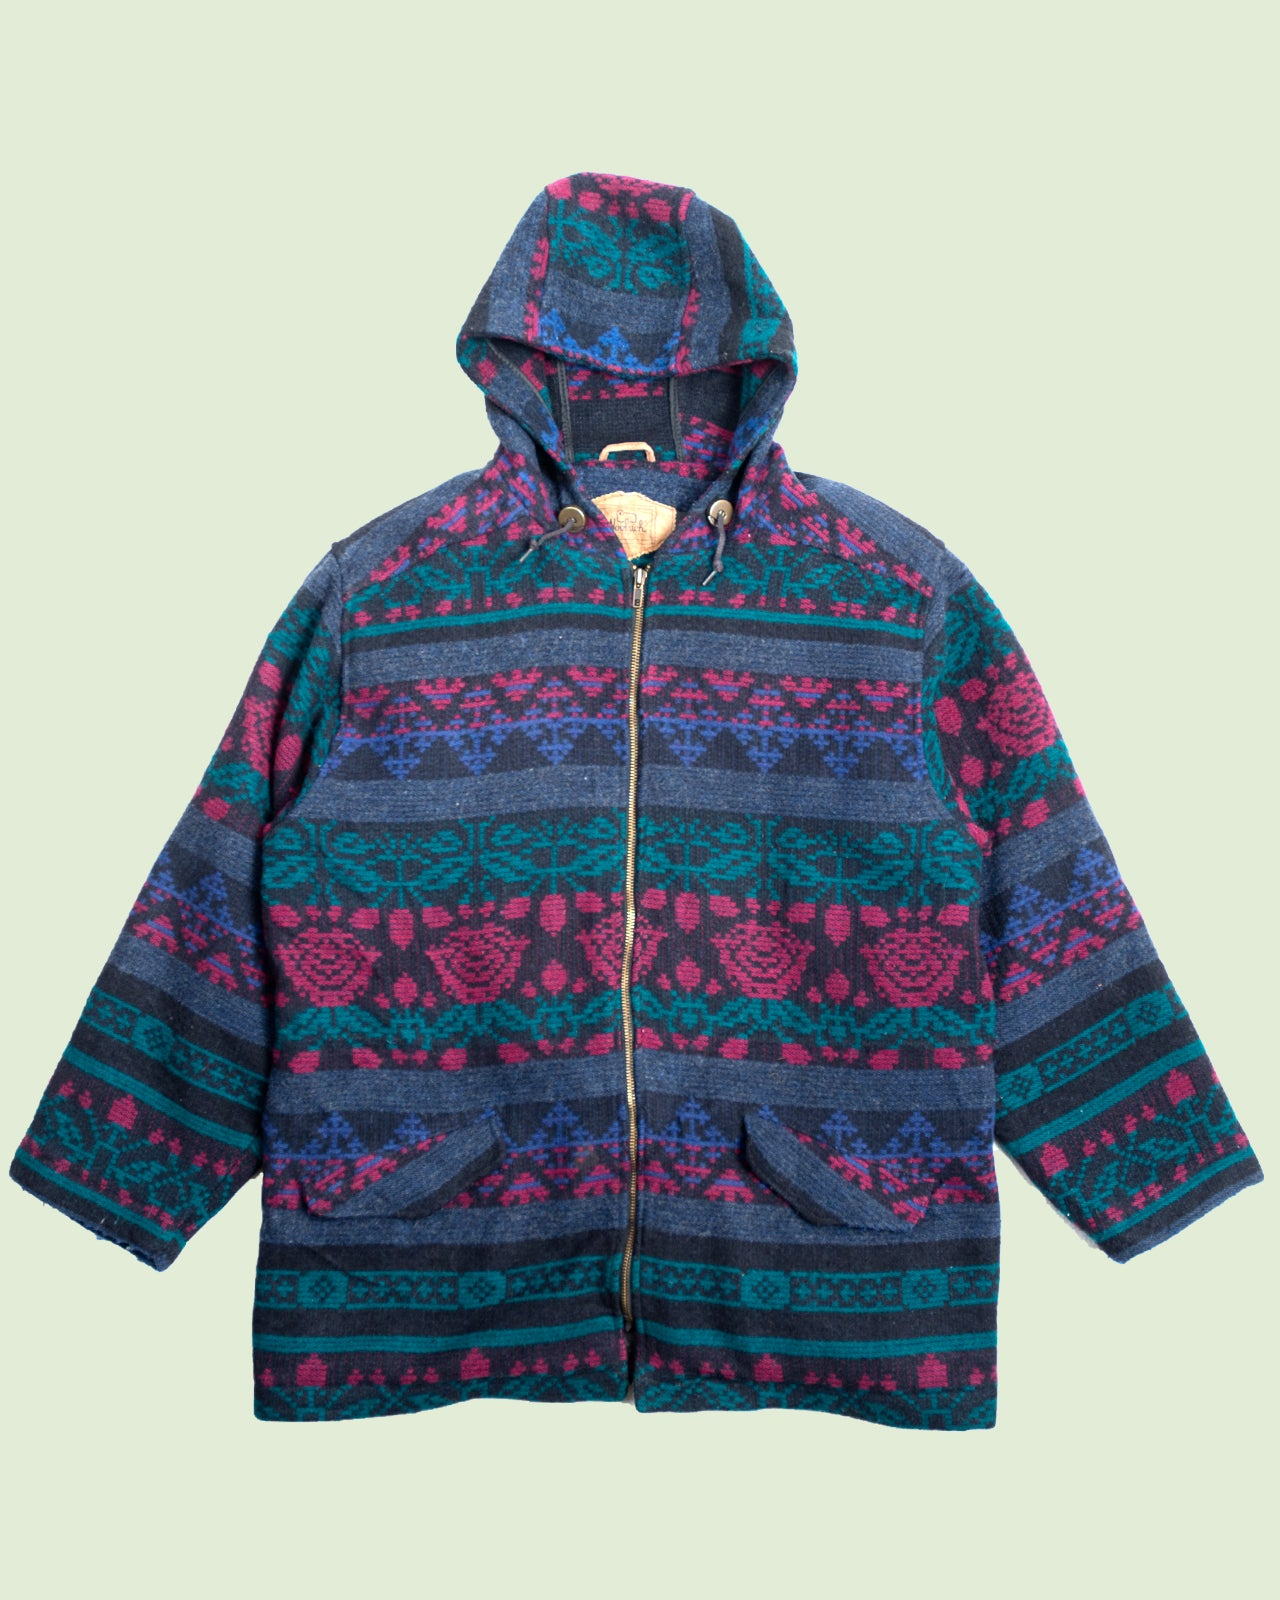 Woolrich Womens Coat Turquoise Patterned (L)